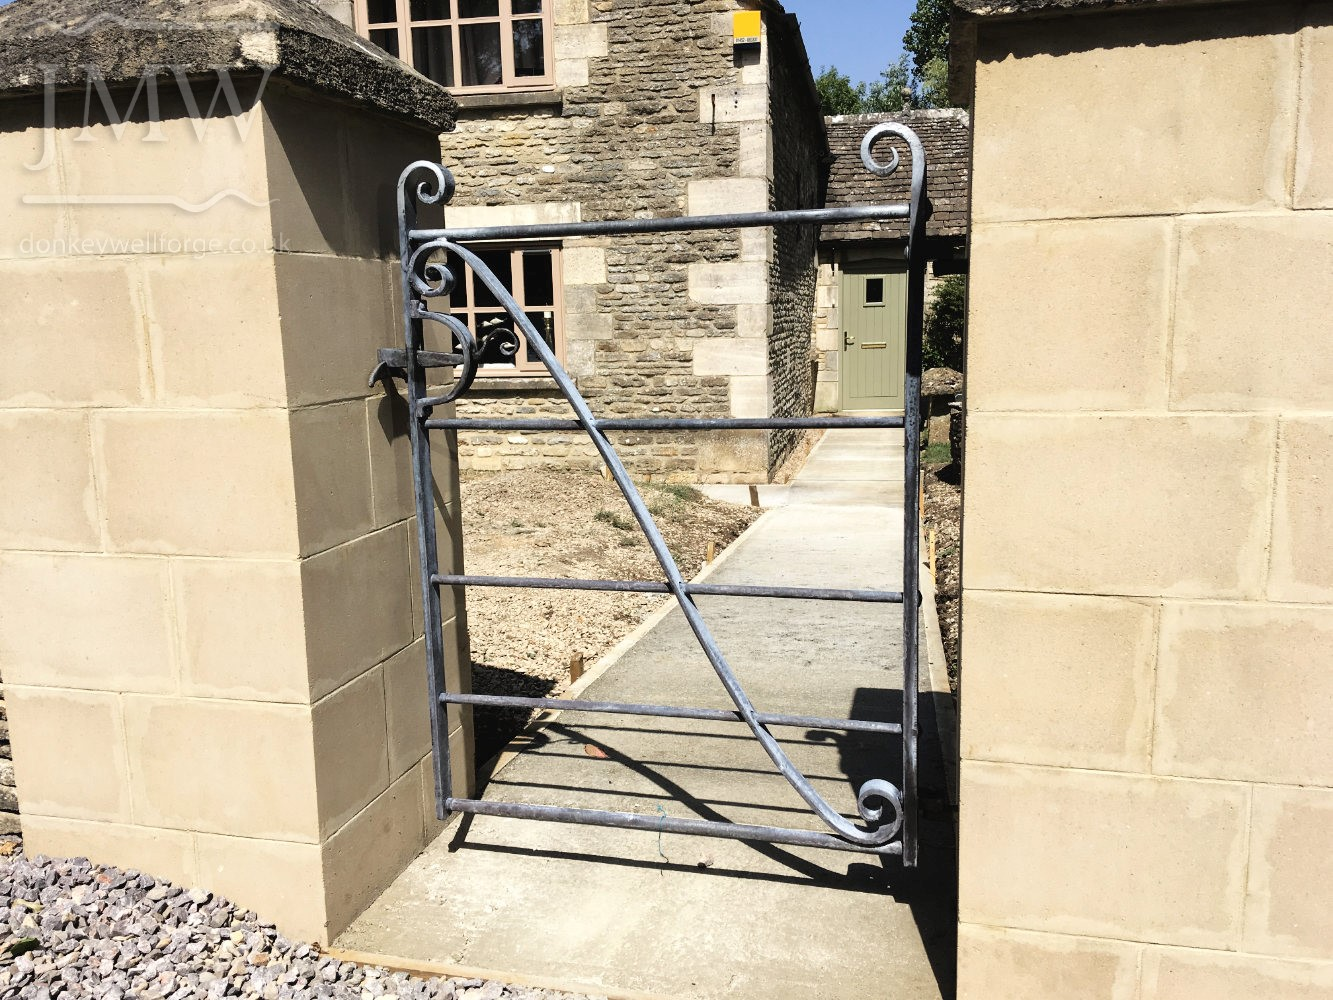 ornate-gate-iron-cotswolds-donkeywell-forge